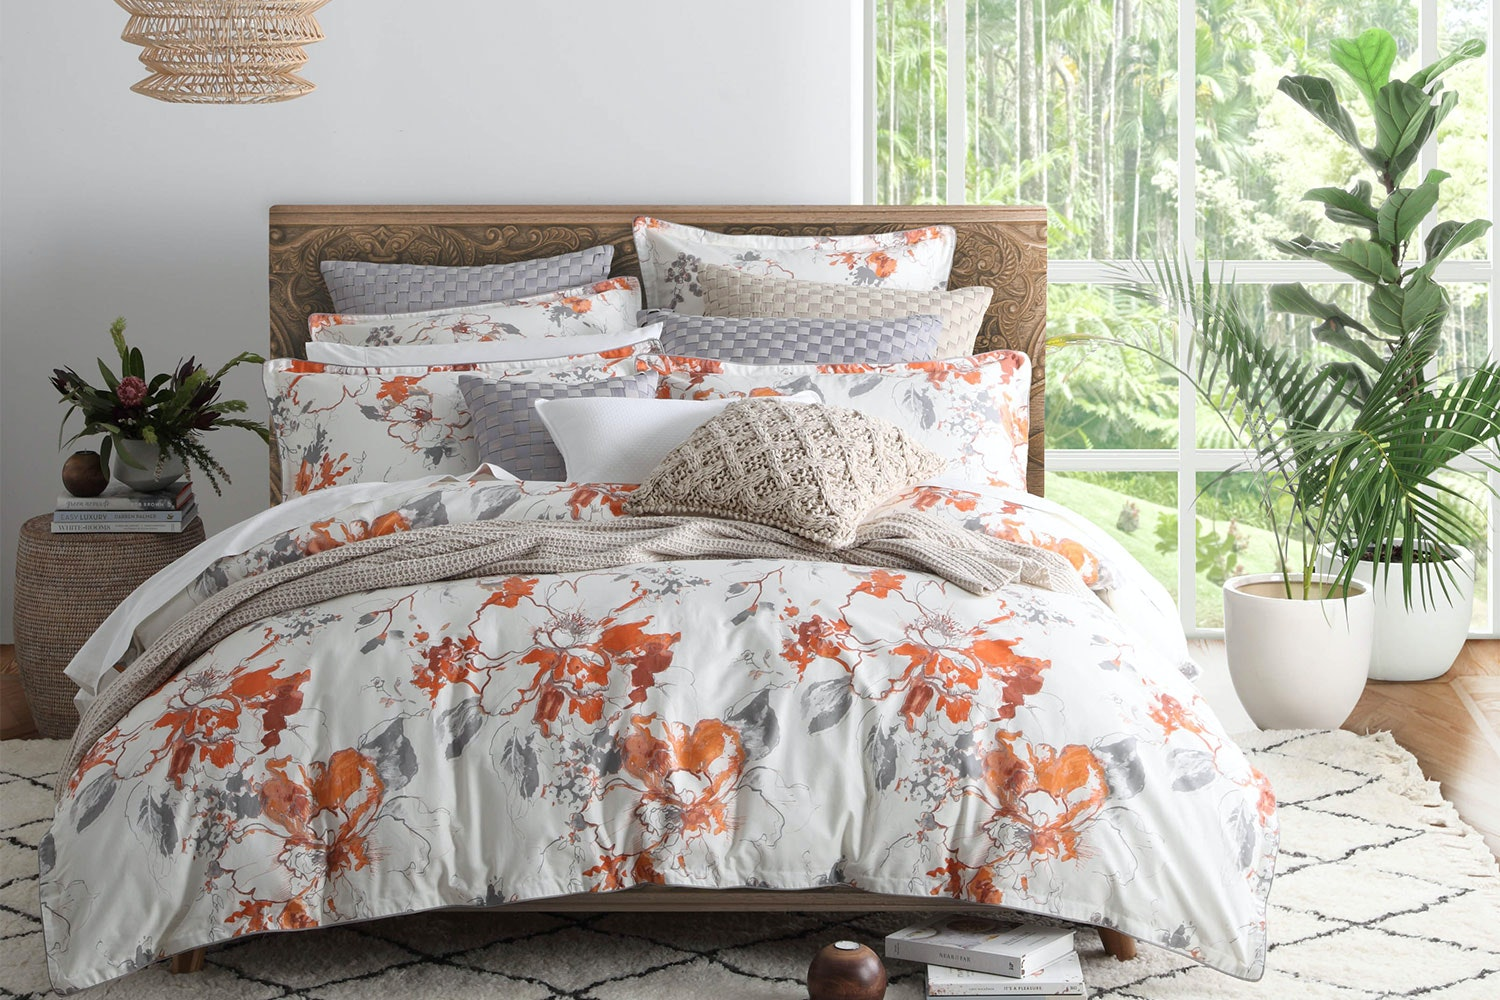 Lidia Saffron Duvet Cover Set by Private Collection